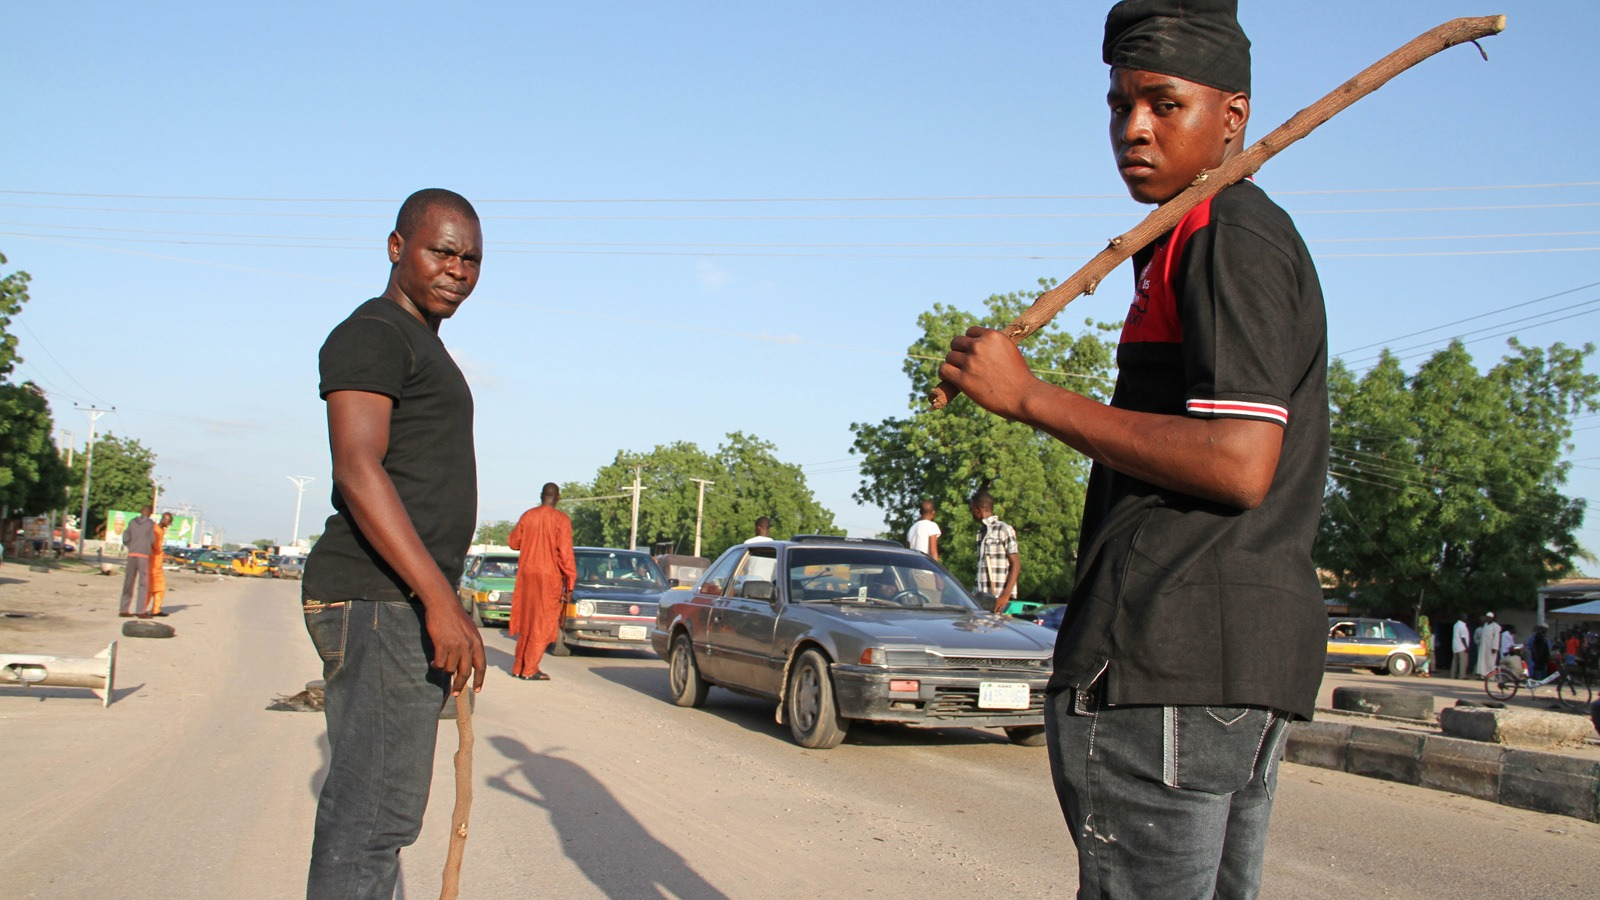 Vigilantes now patrol the streets of Maiduguri, Nigeria